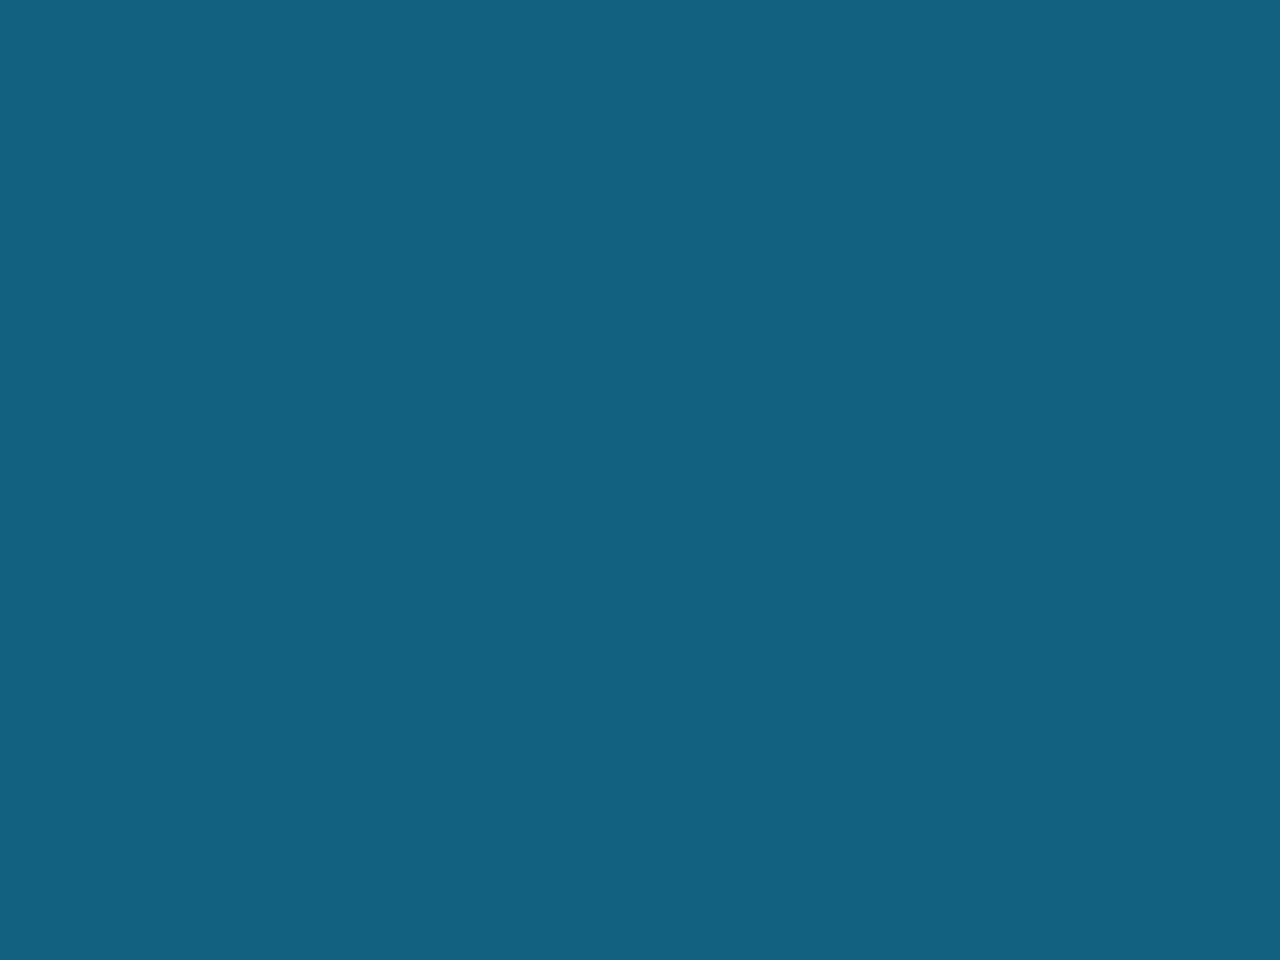 1280x960 Blue Sapphire Solid Color Background